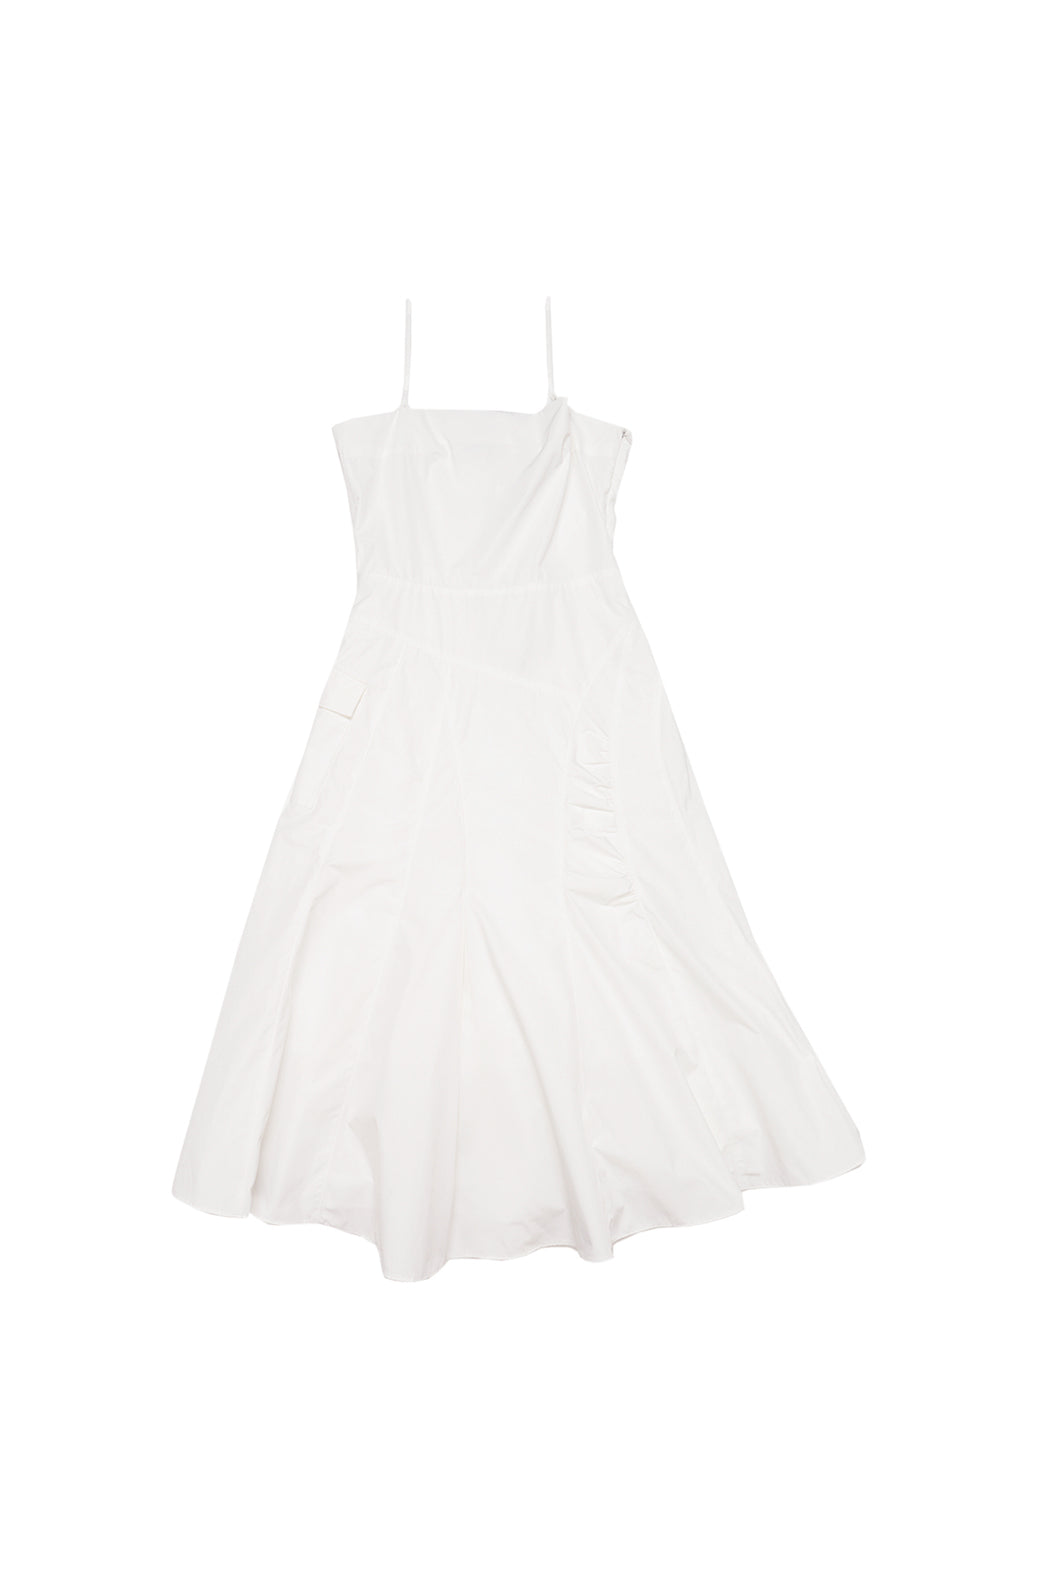 Cargo Flared Dress - White